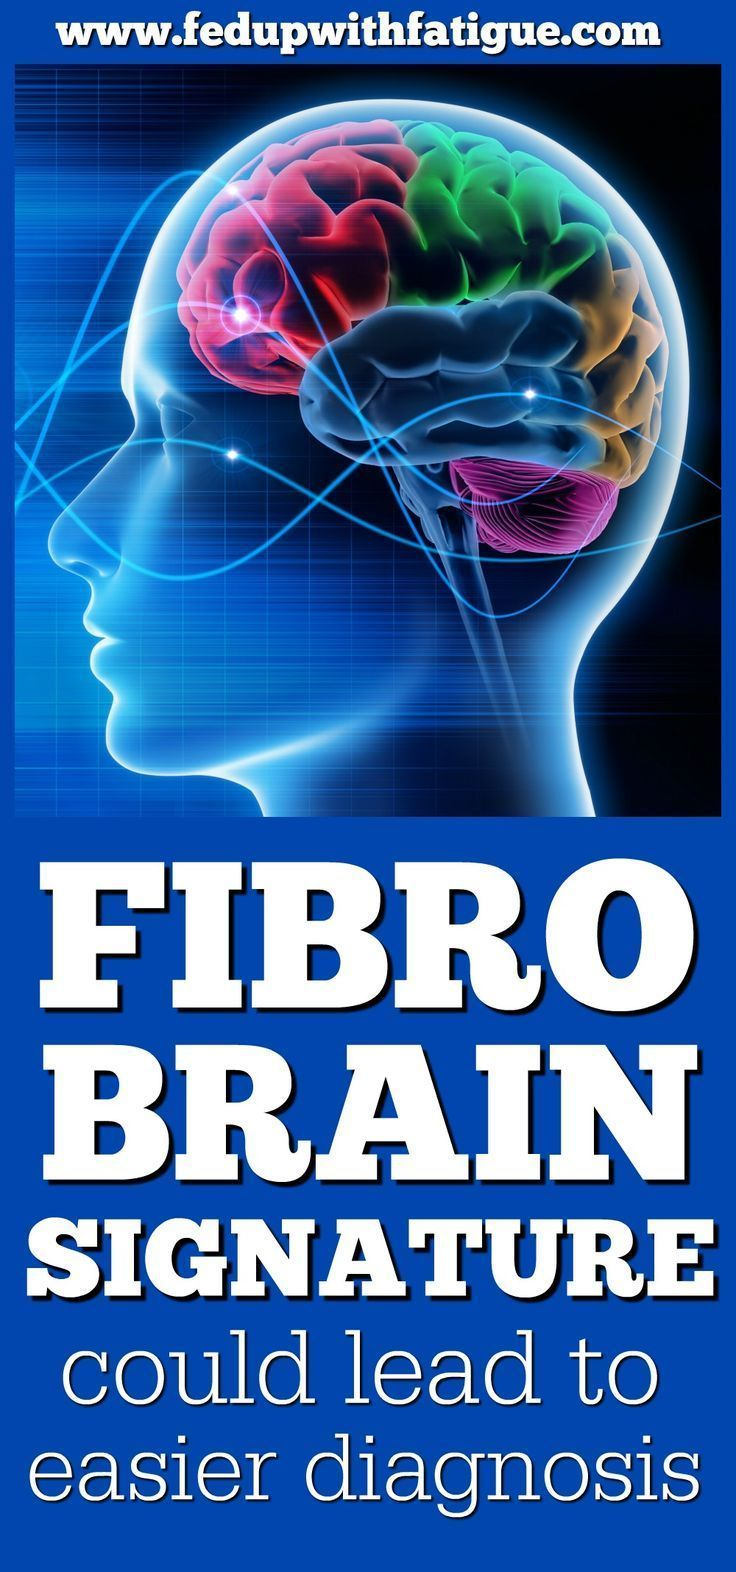 University of Colorado Boulder researchers have identified a unique brain signature in fibromyalgia patients. The finding could eventually lead to the development of a diagnostic tool for fibromyalgia.